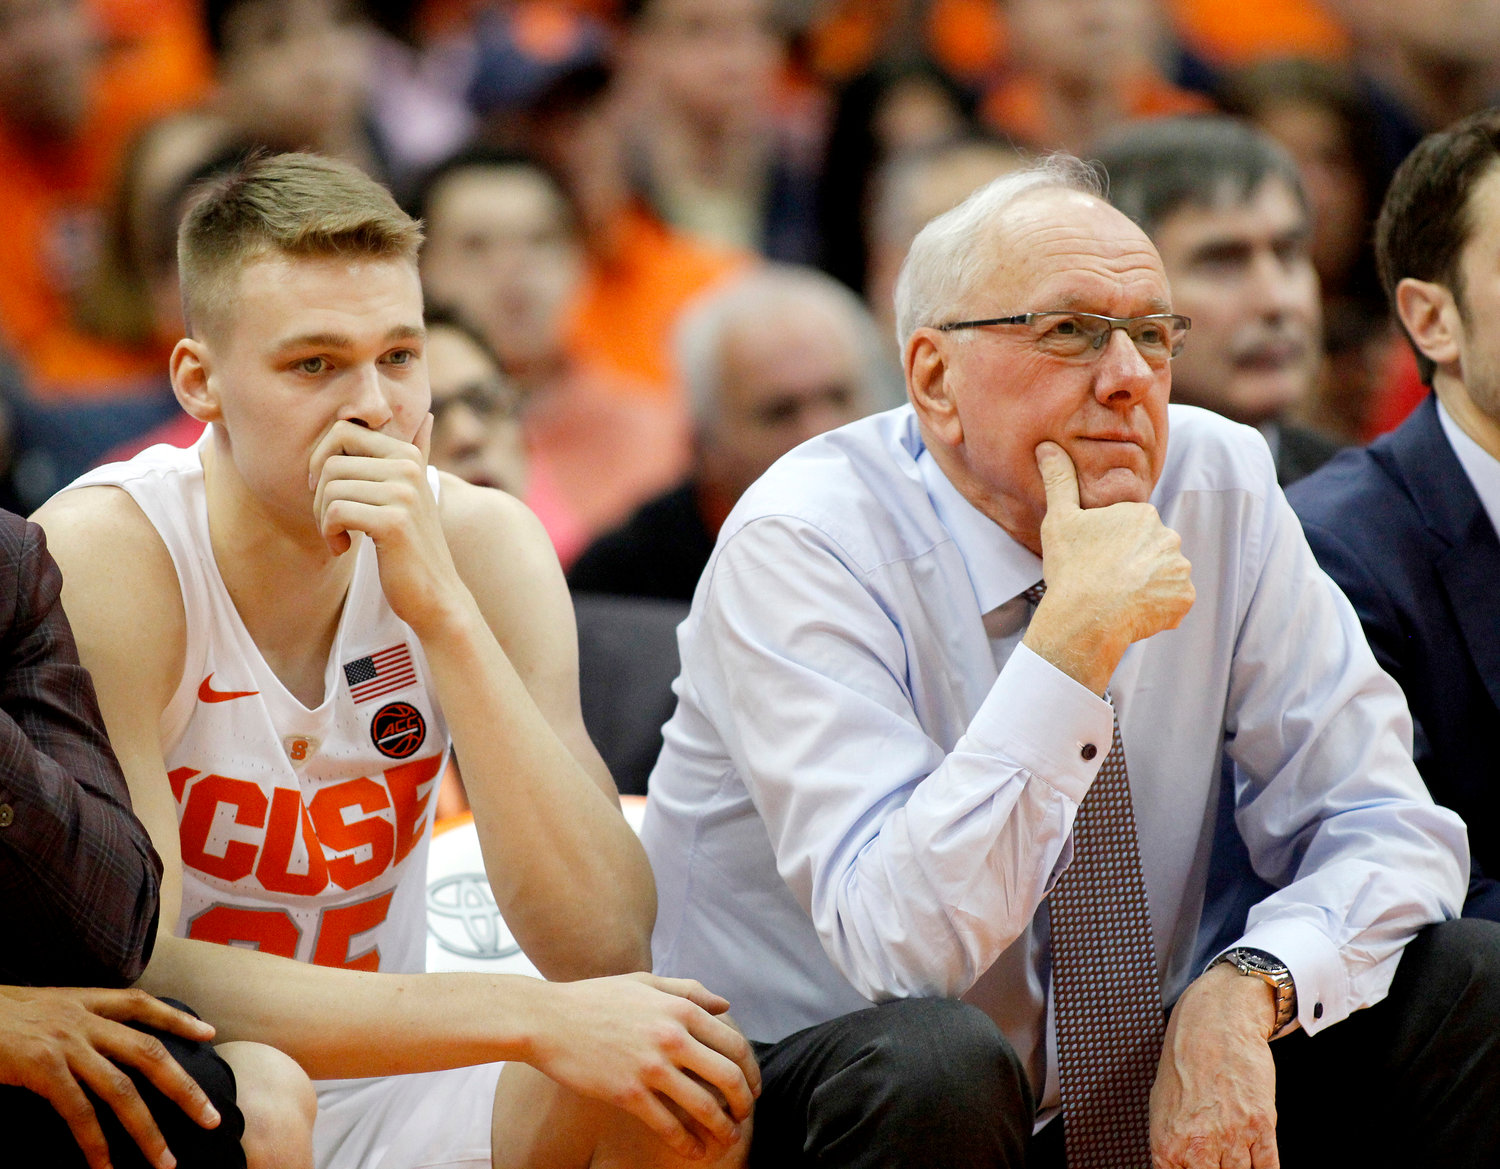 Emotions Run High For Su Coach Boeheim And 35 642 Basketball Fans At The Dome Rome Daily Sentinel